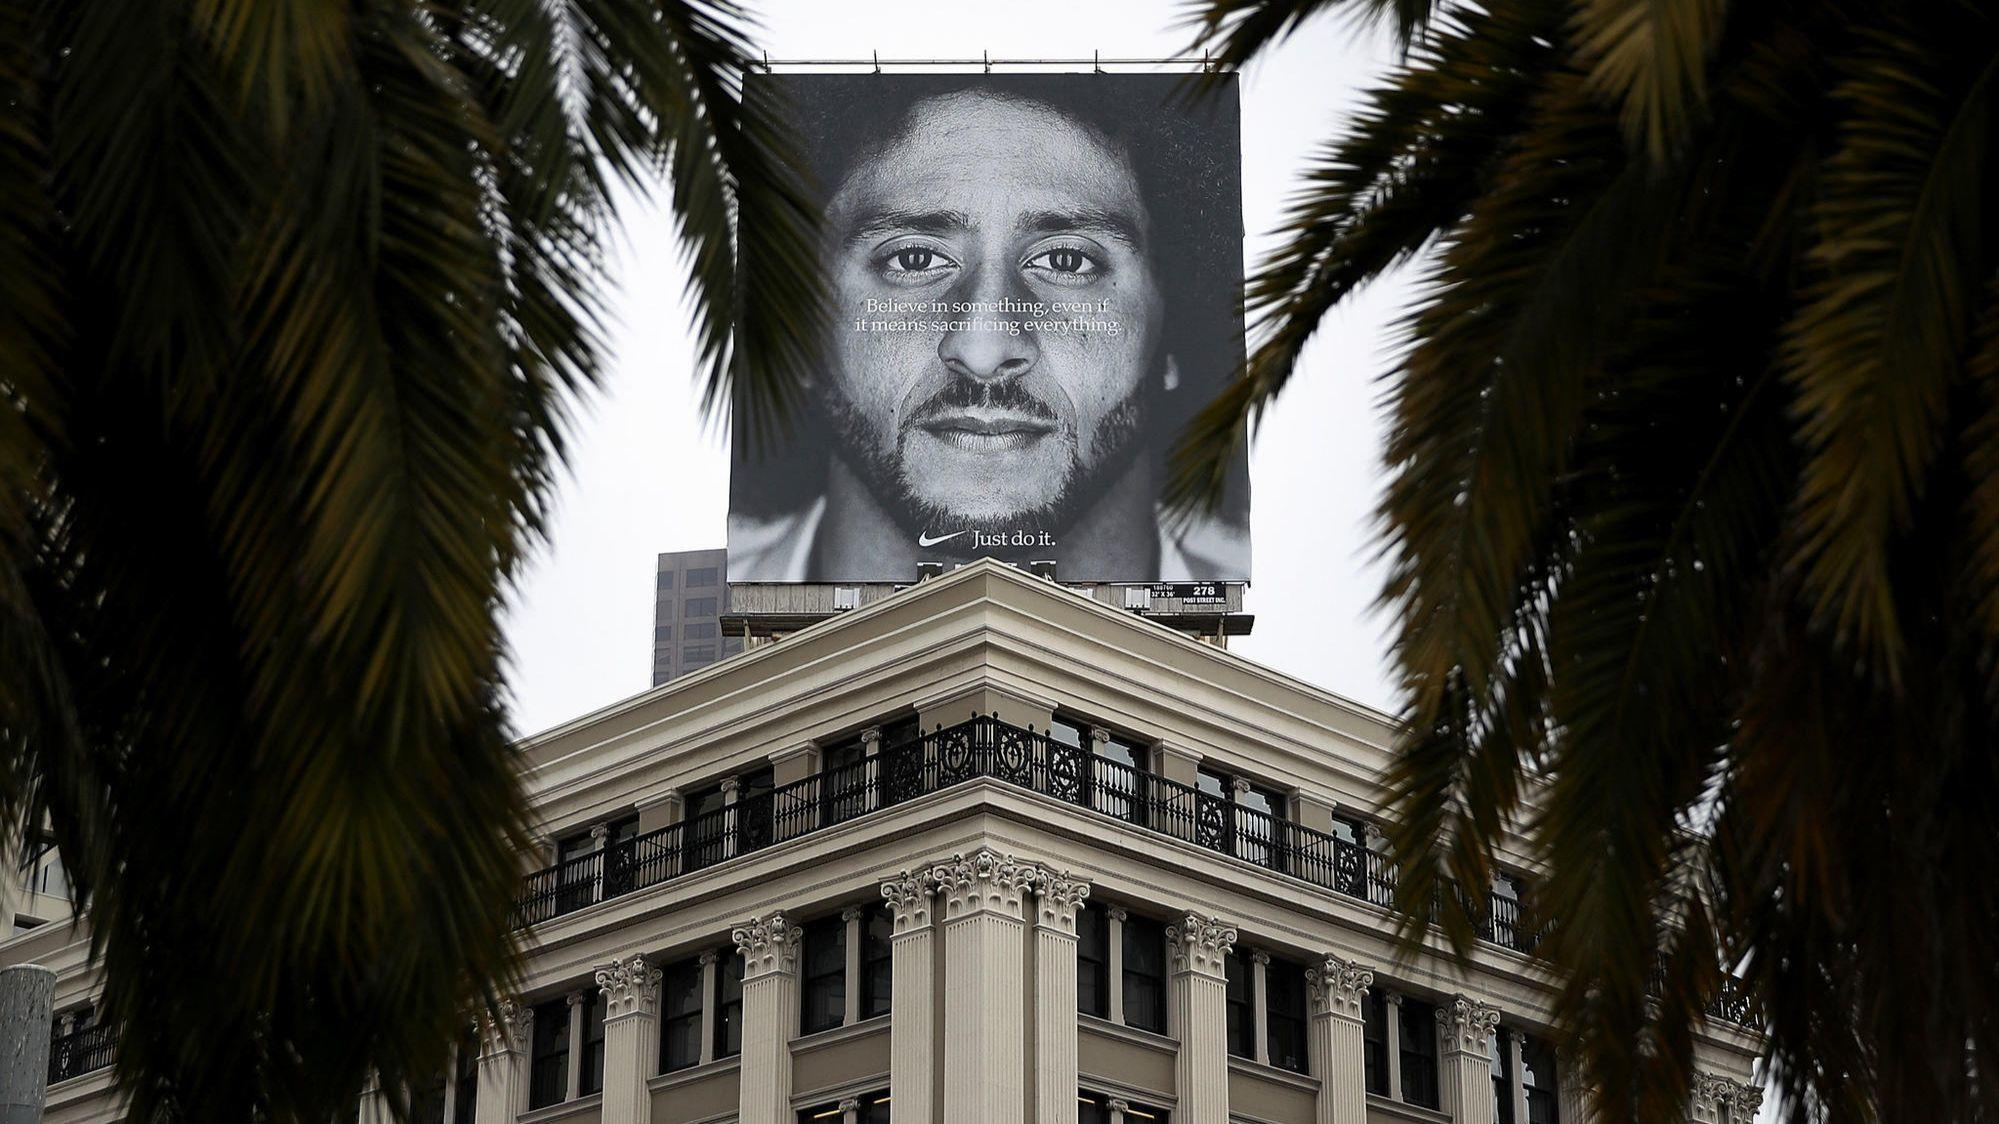 new style 30f5a 2b381 Nike ad wedges Colin Kaepernick back into the NFL, but money muddles the  message